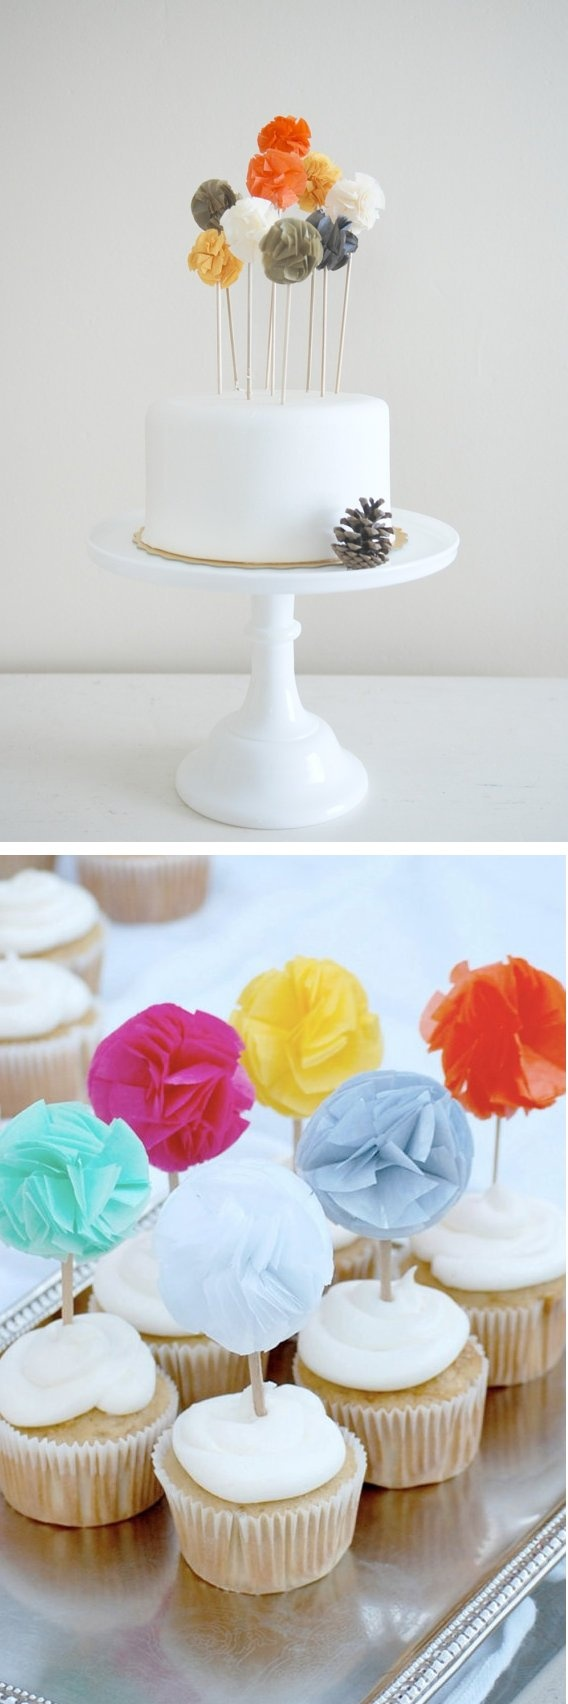 Quick Easy Cake Decoration : 29 best images about Cake Decorating ideas on Pinterest